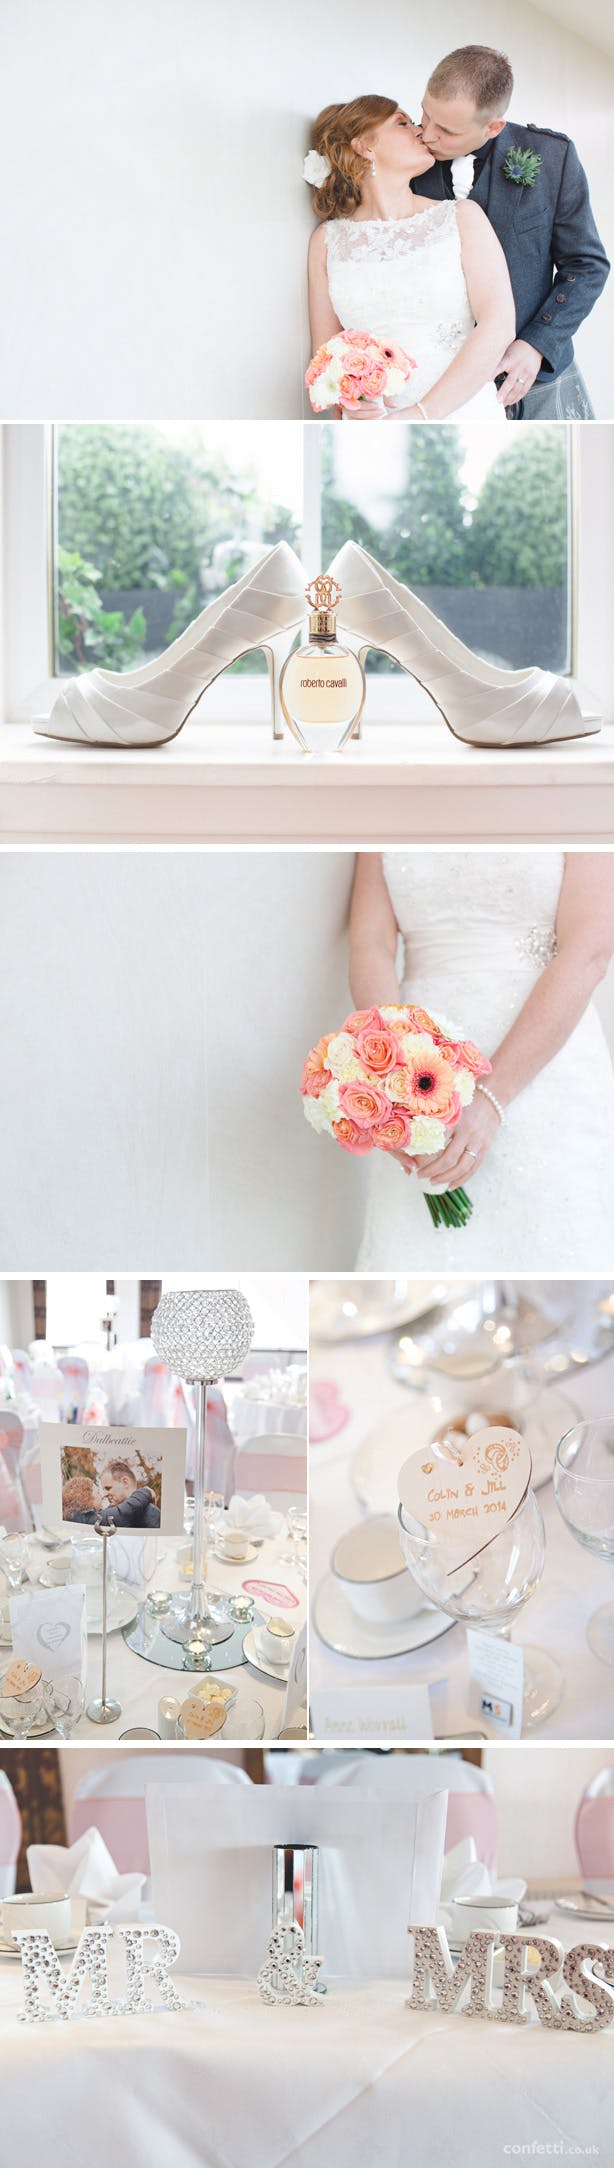 Jill And Colin's Ivory And Coral Real Wedding | Confetti.co.uk